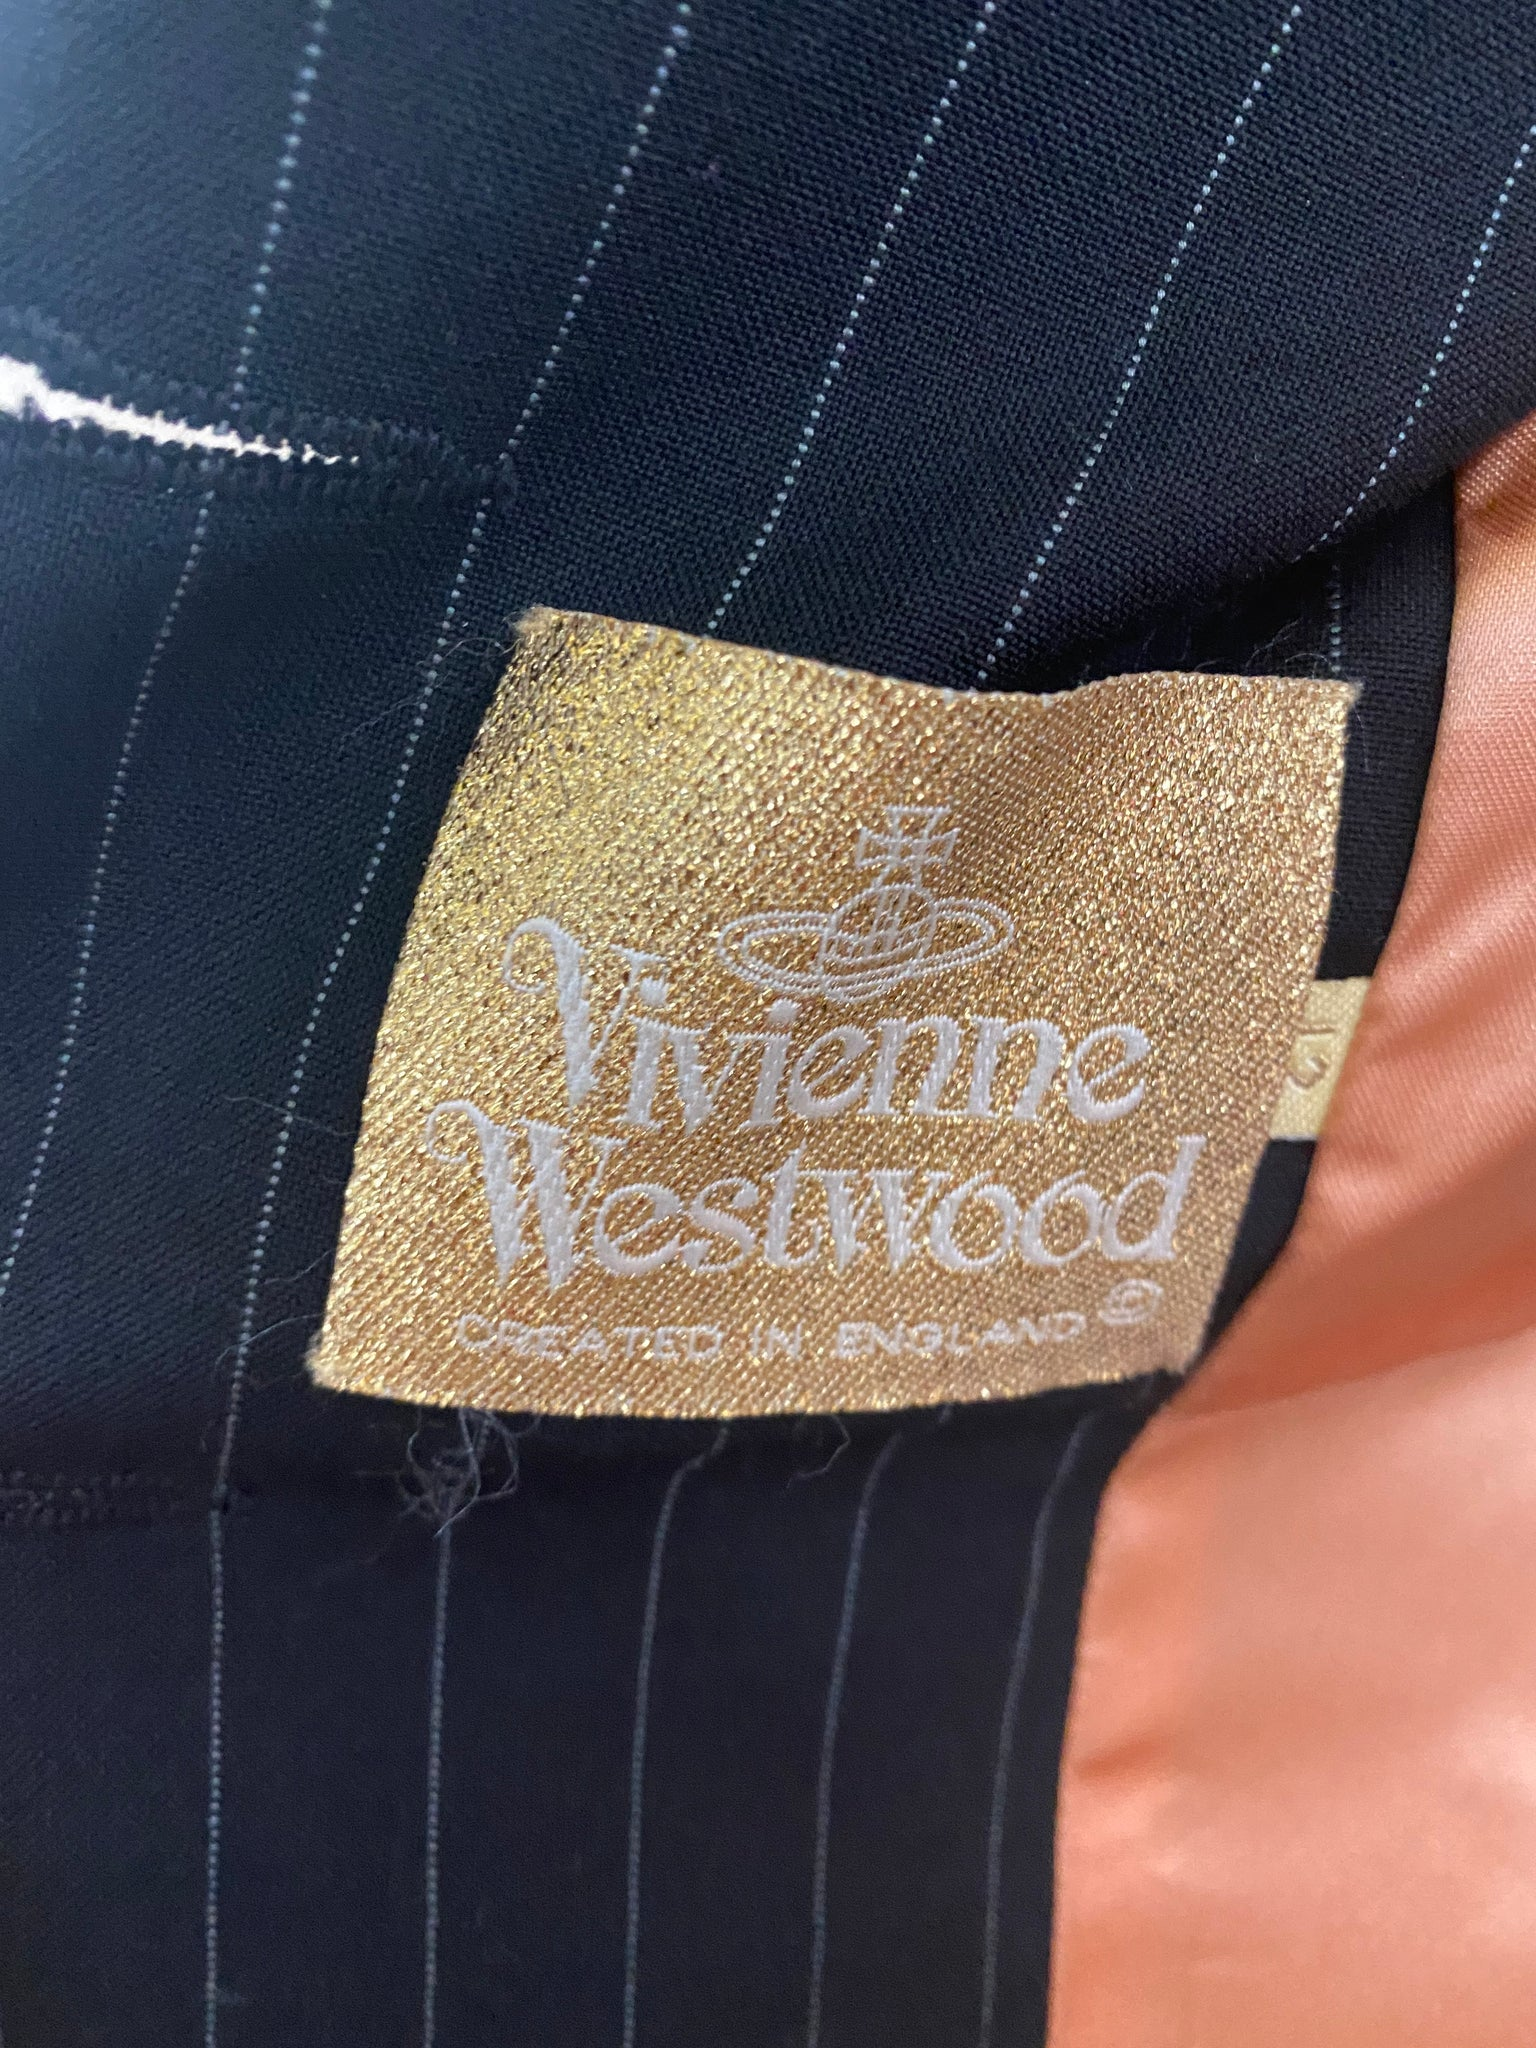 Vivienne Westwood 90s Black Pinstripe Equestrian Ensemble LABEL 6 of 6